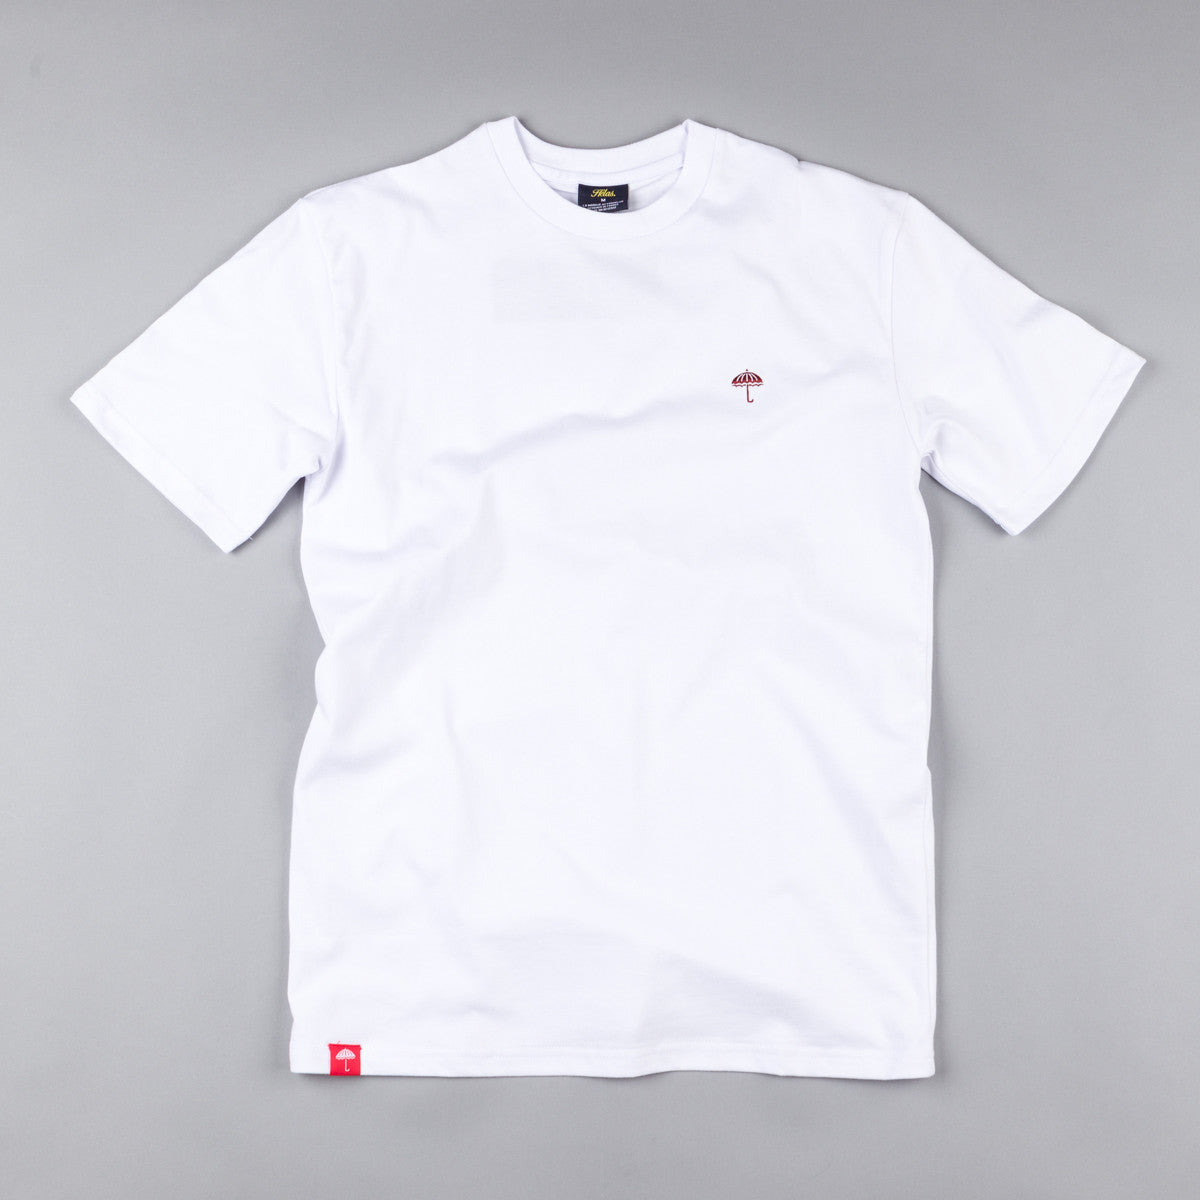 Helas Classic T-Shirt White / Red